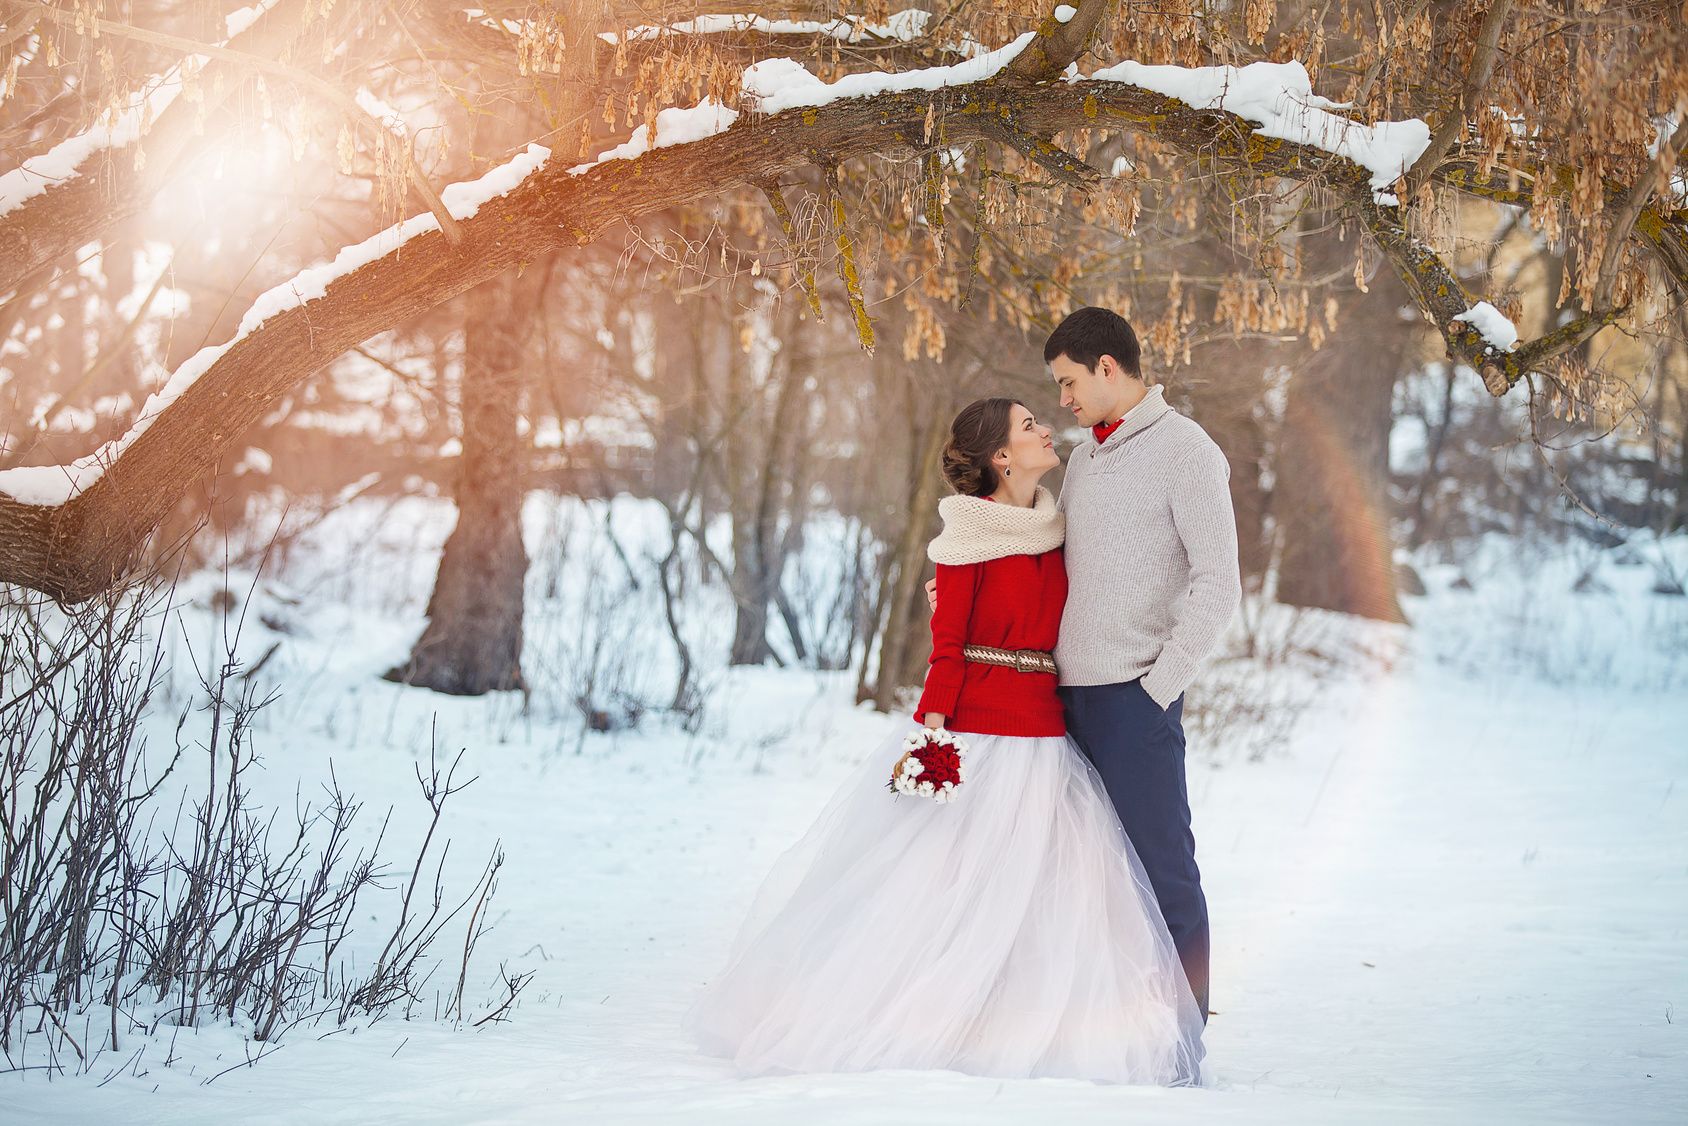 WinterWedding4